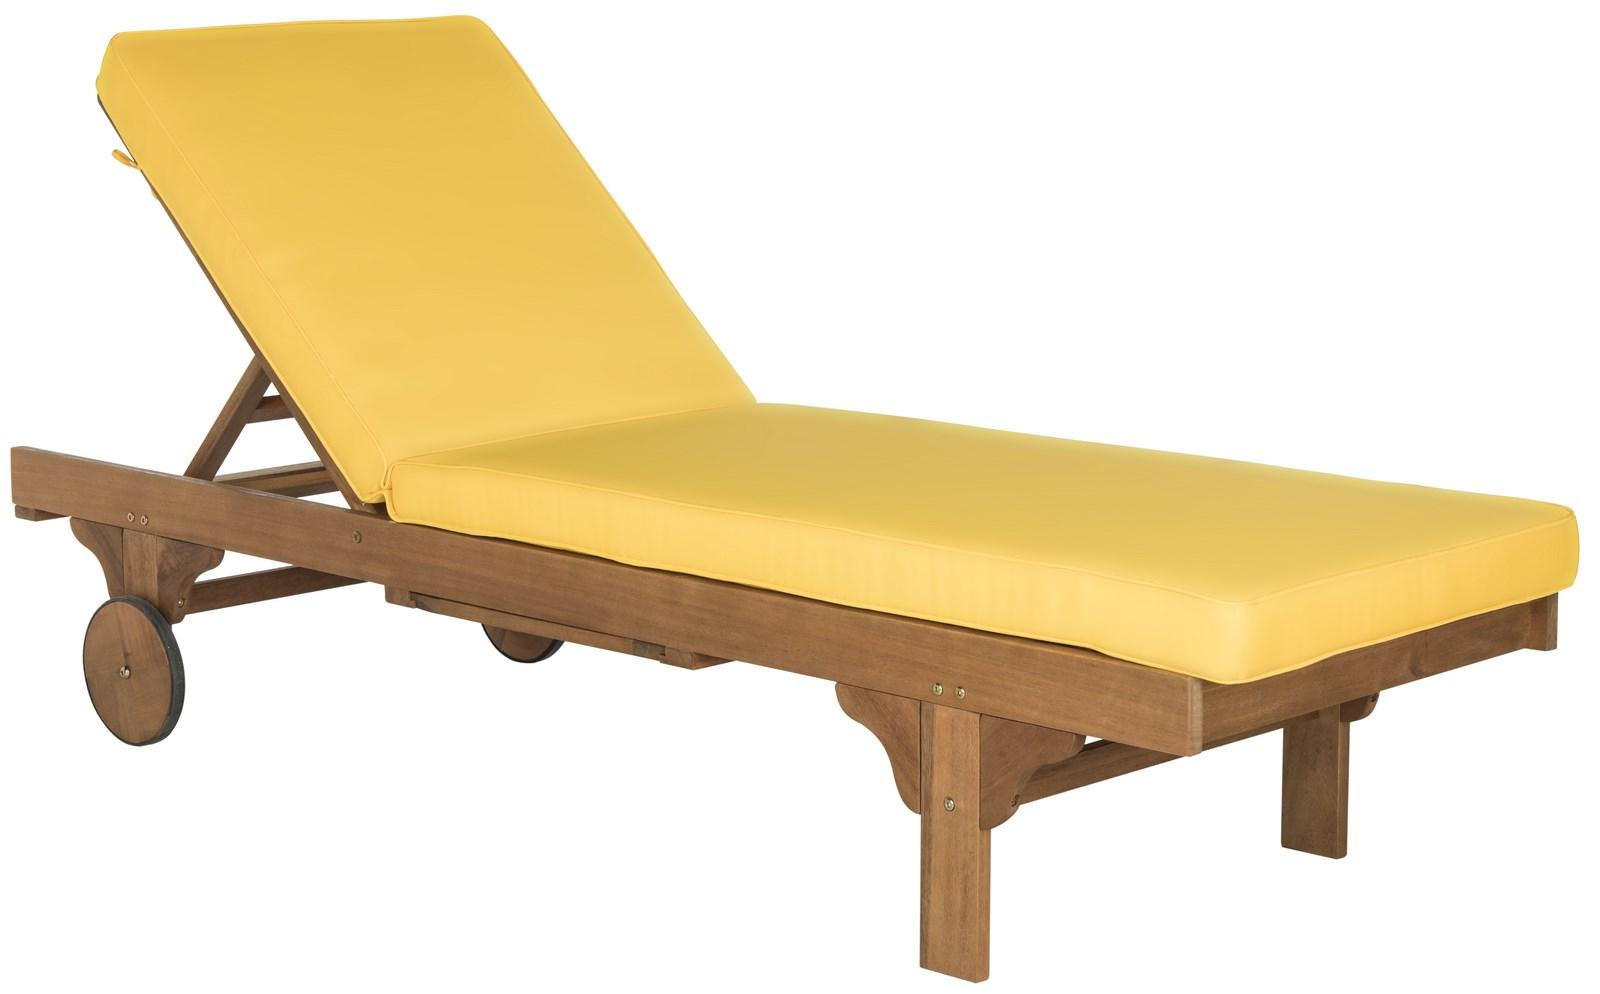 Pool Chaise Lounge Chairs Chaise Lounge Chair Outdoor Furnishings Safavieh